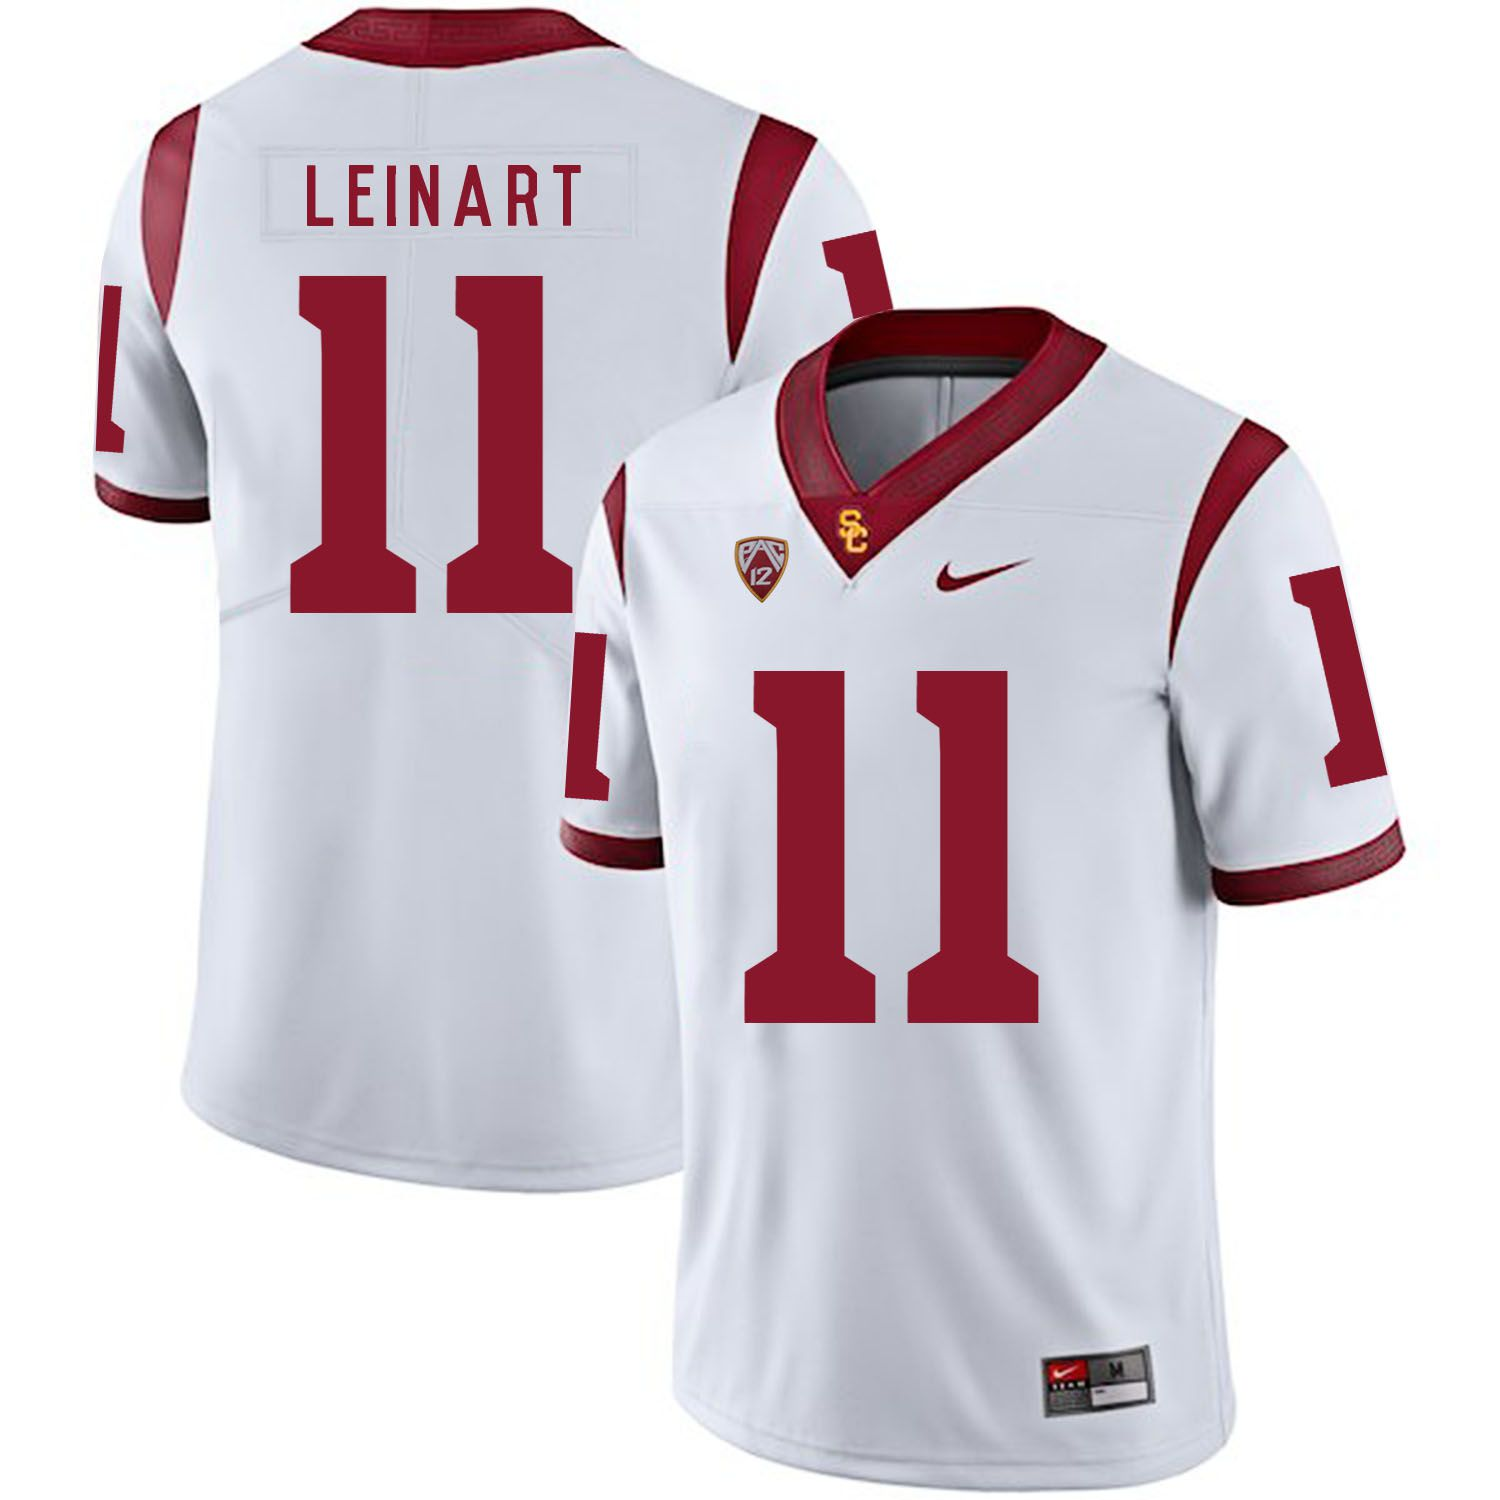 Men USC Trojans 11 Leinart White Customized NCAA Jerseys